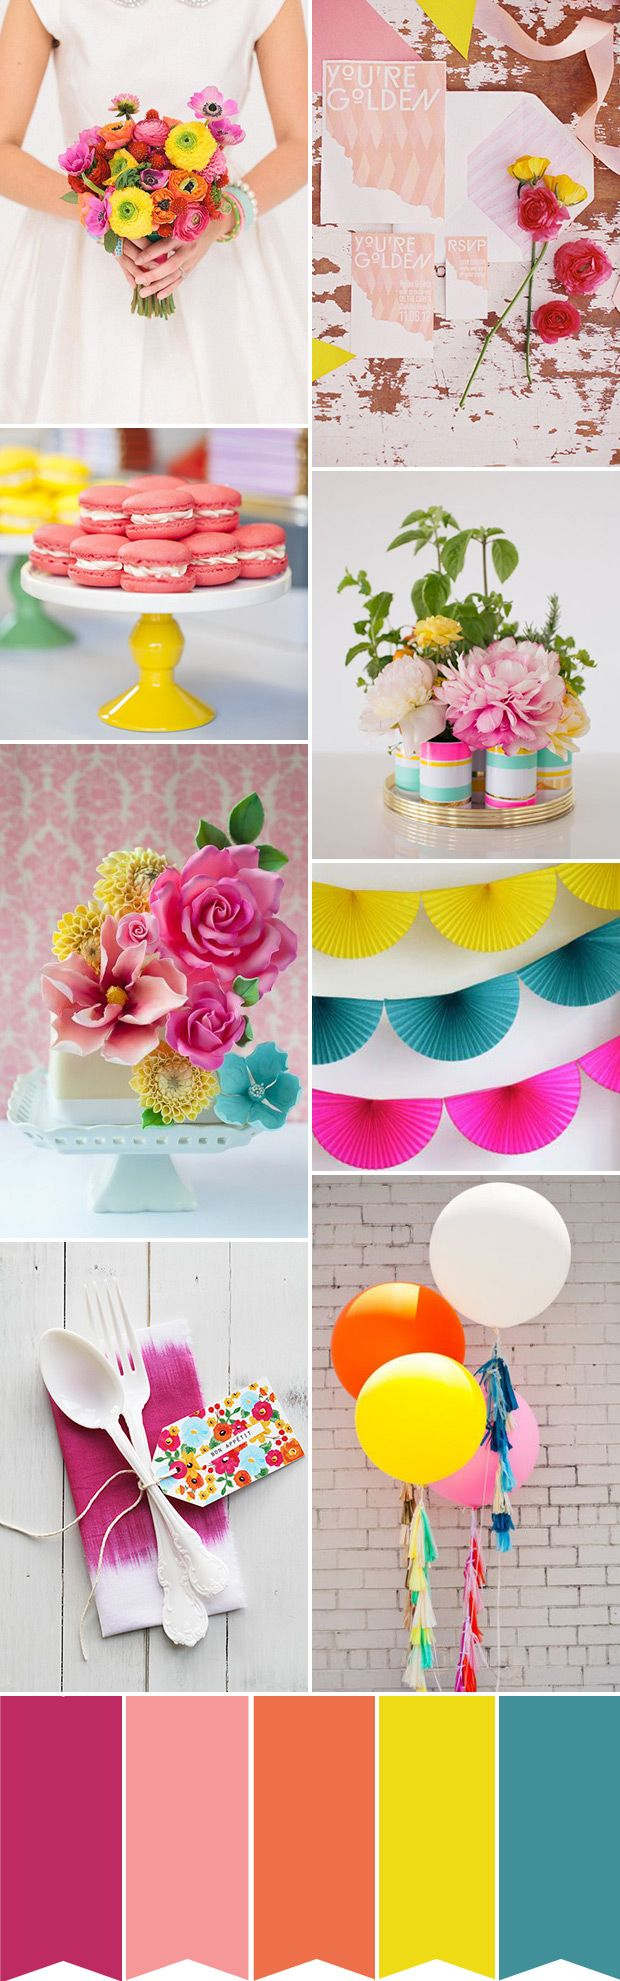 A colourful and fun wedding colour palette | www.onefabday.com